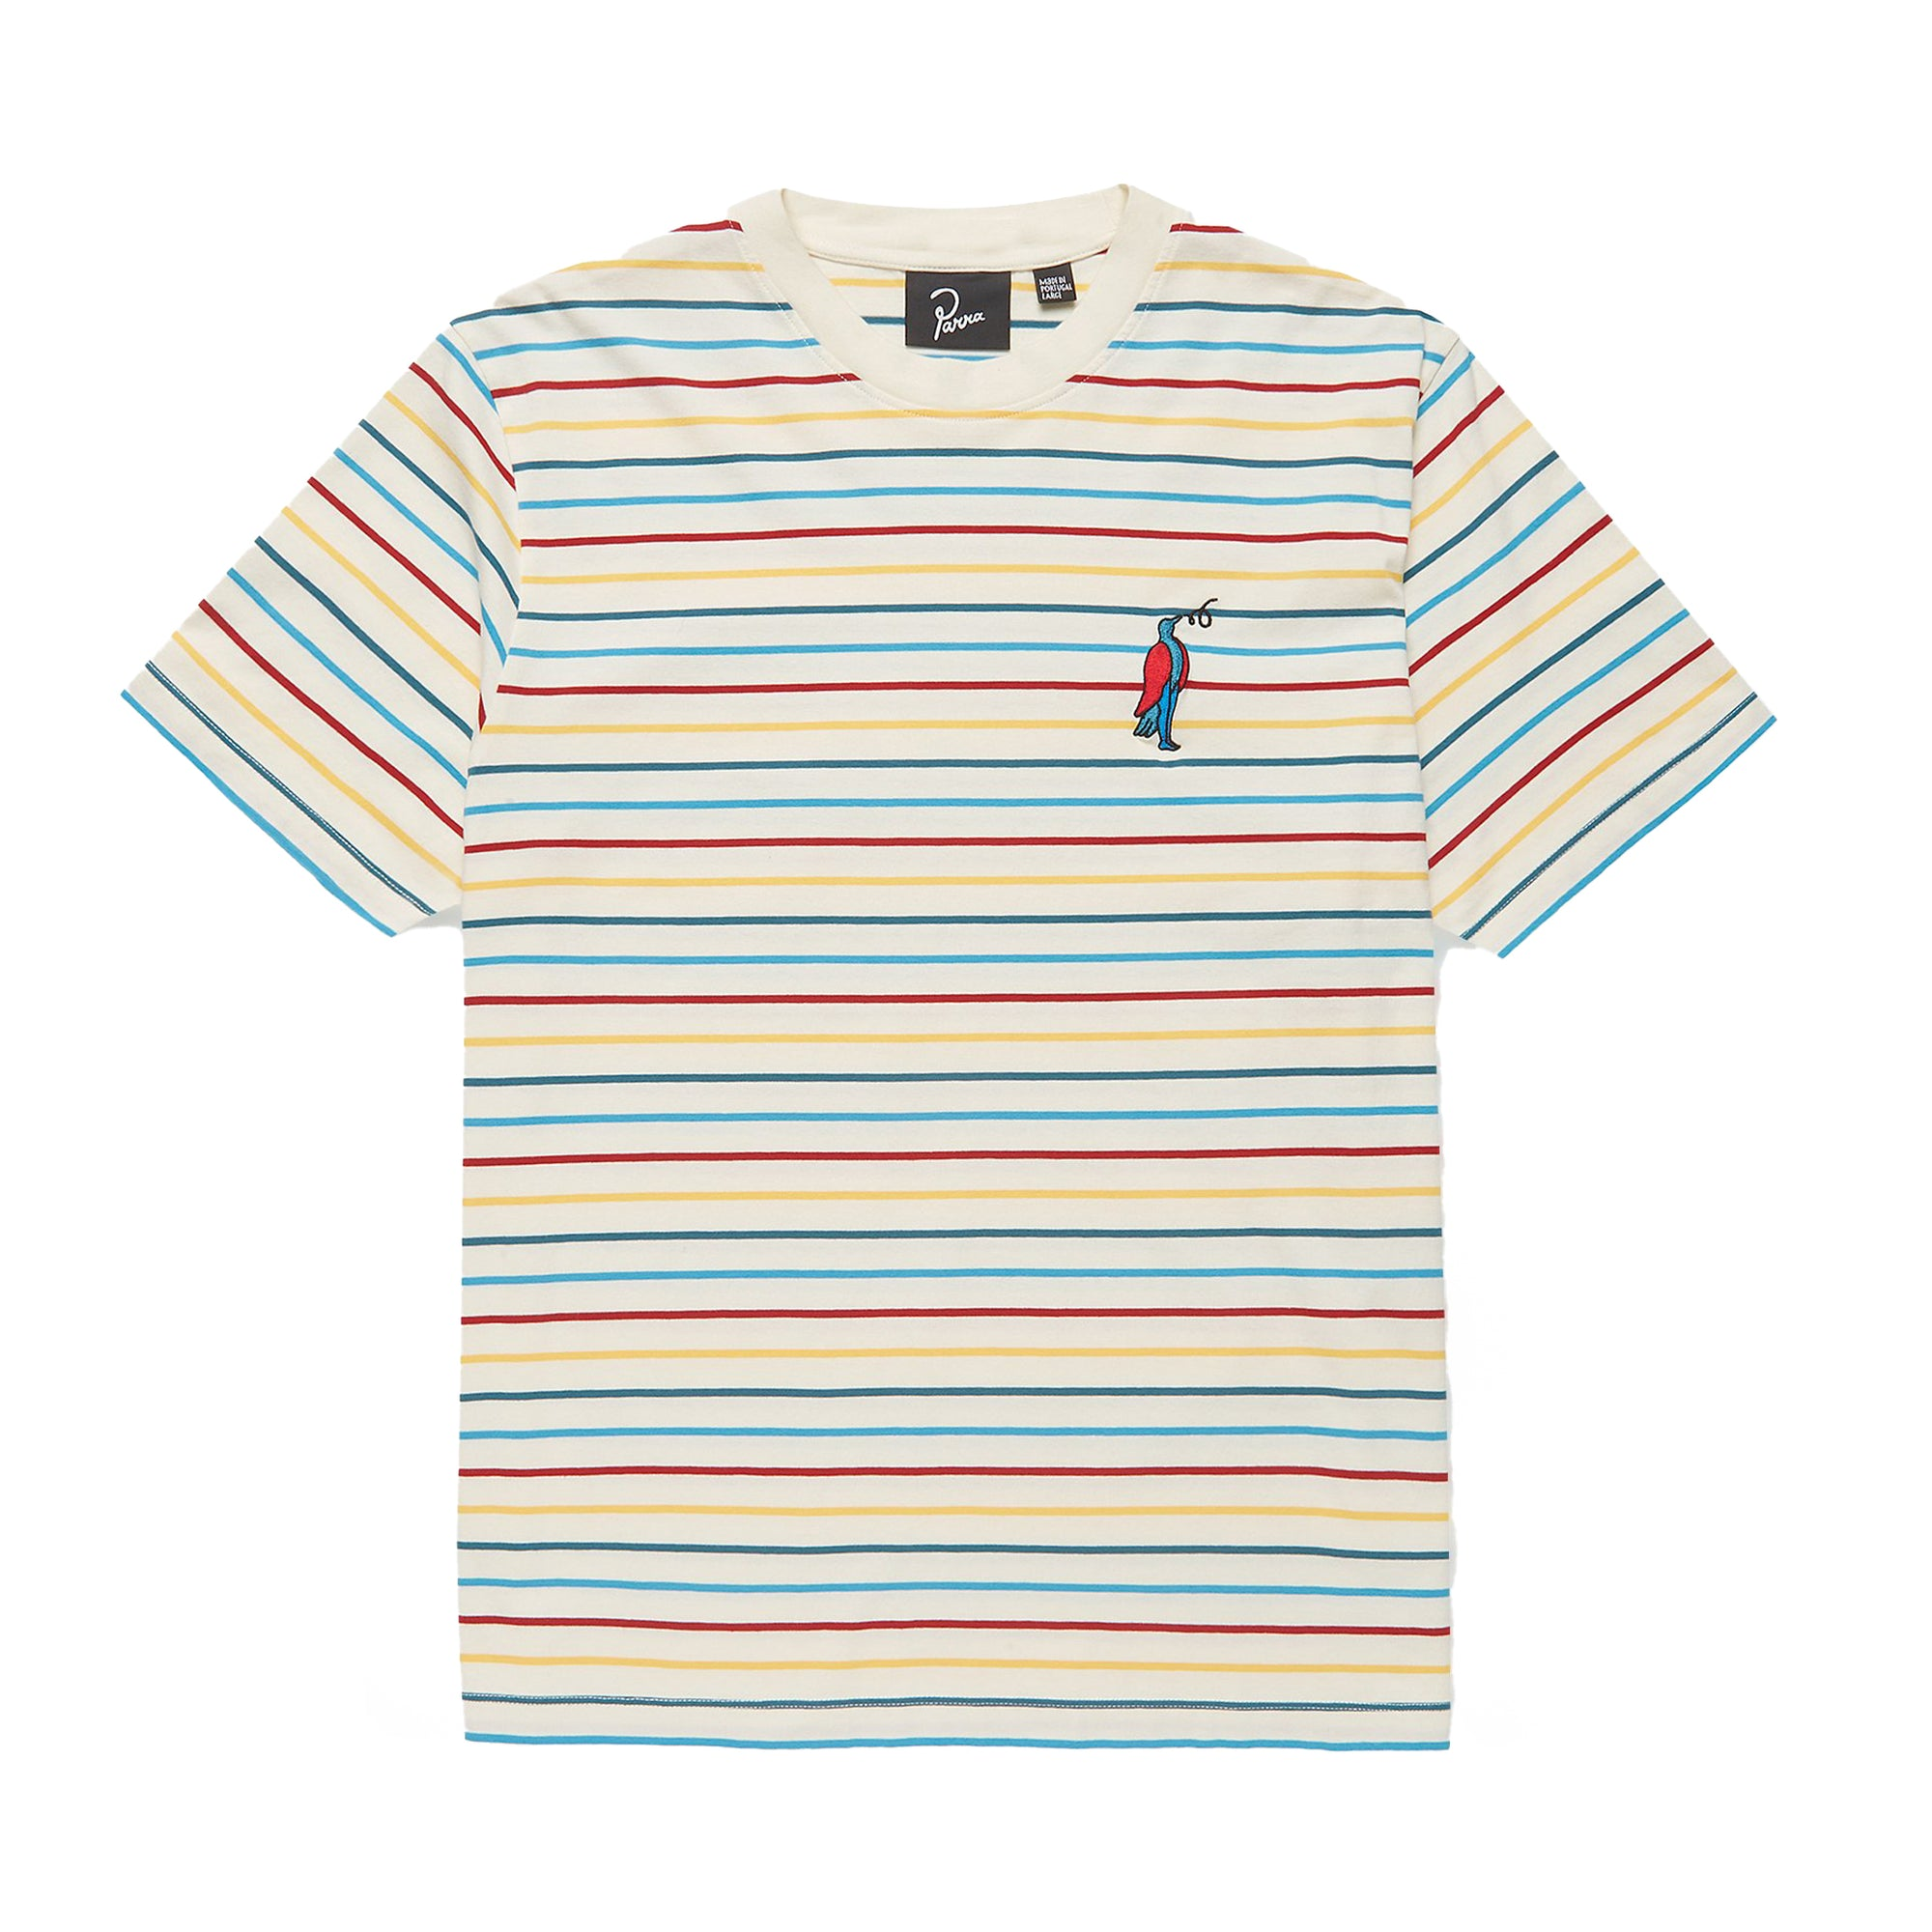 Parra Staring Striped T-Shirt: Multi - The Union Project